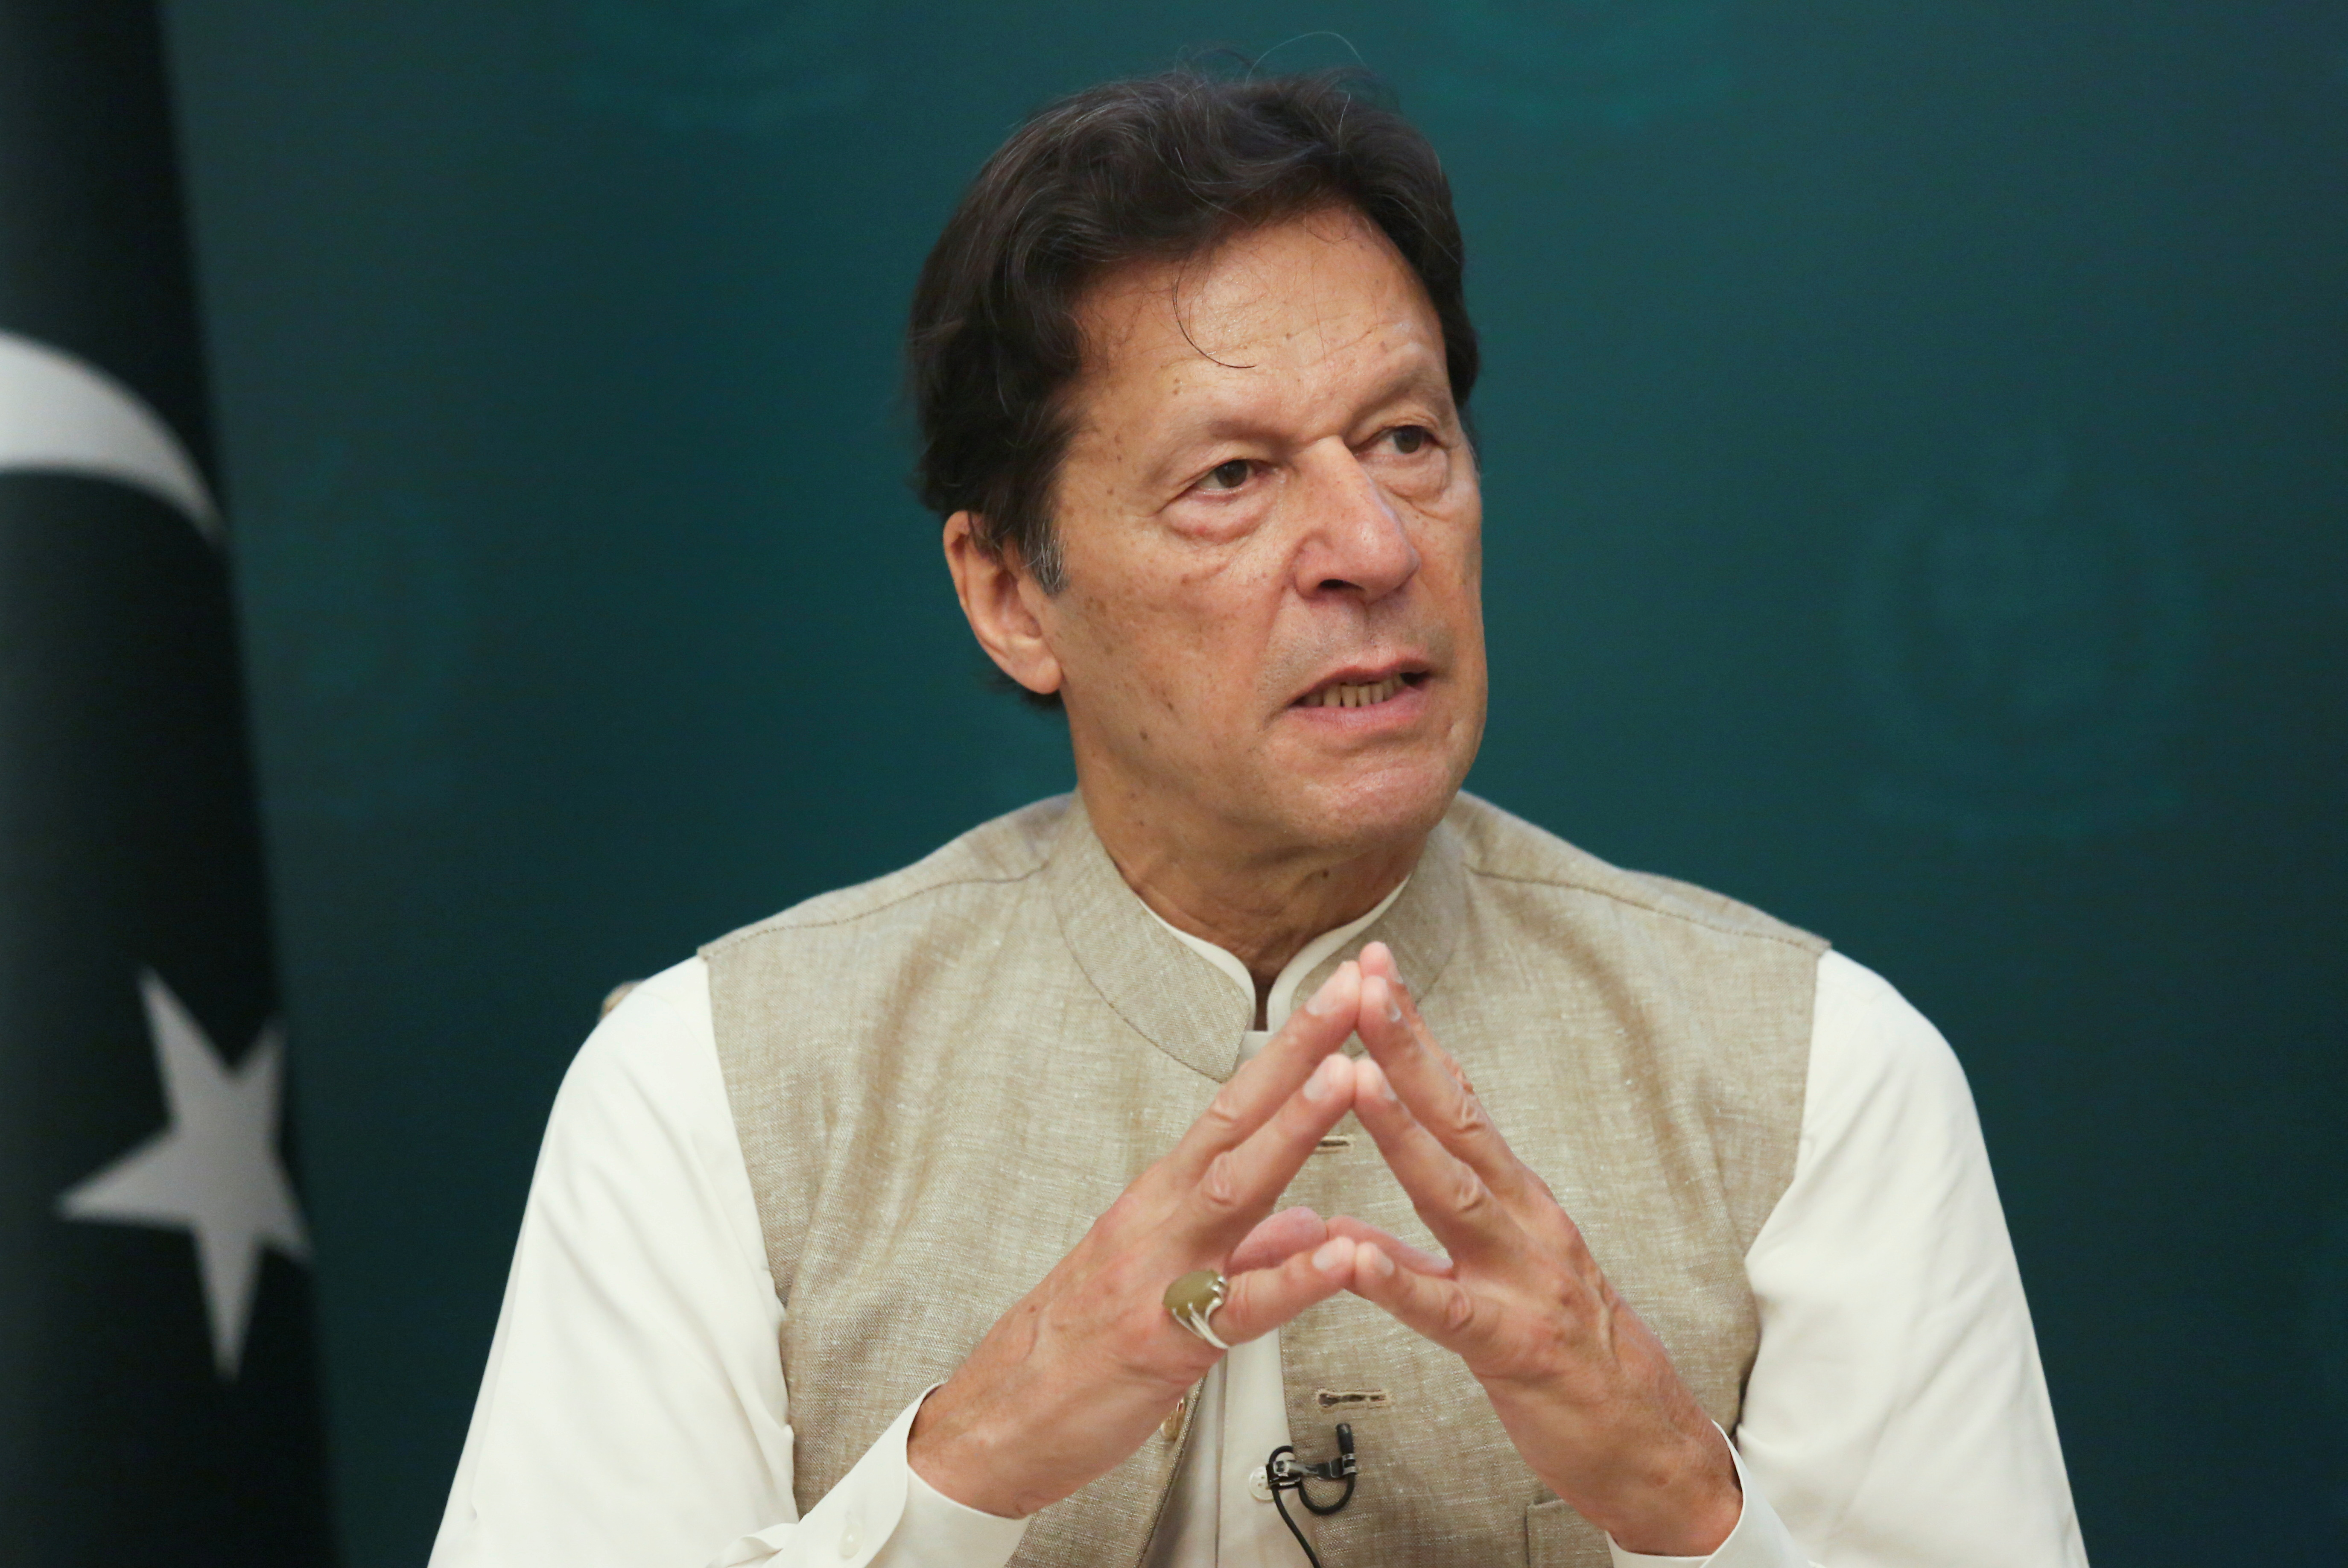 Pakistan's Prime Minister Imran Khan speaks during an interview with Reuters in Islamabad, Pakistan June 4, 2021. REUTERS/Saiyna Bashir/File Photo